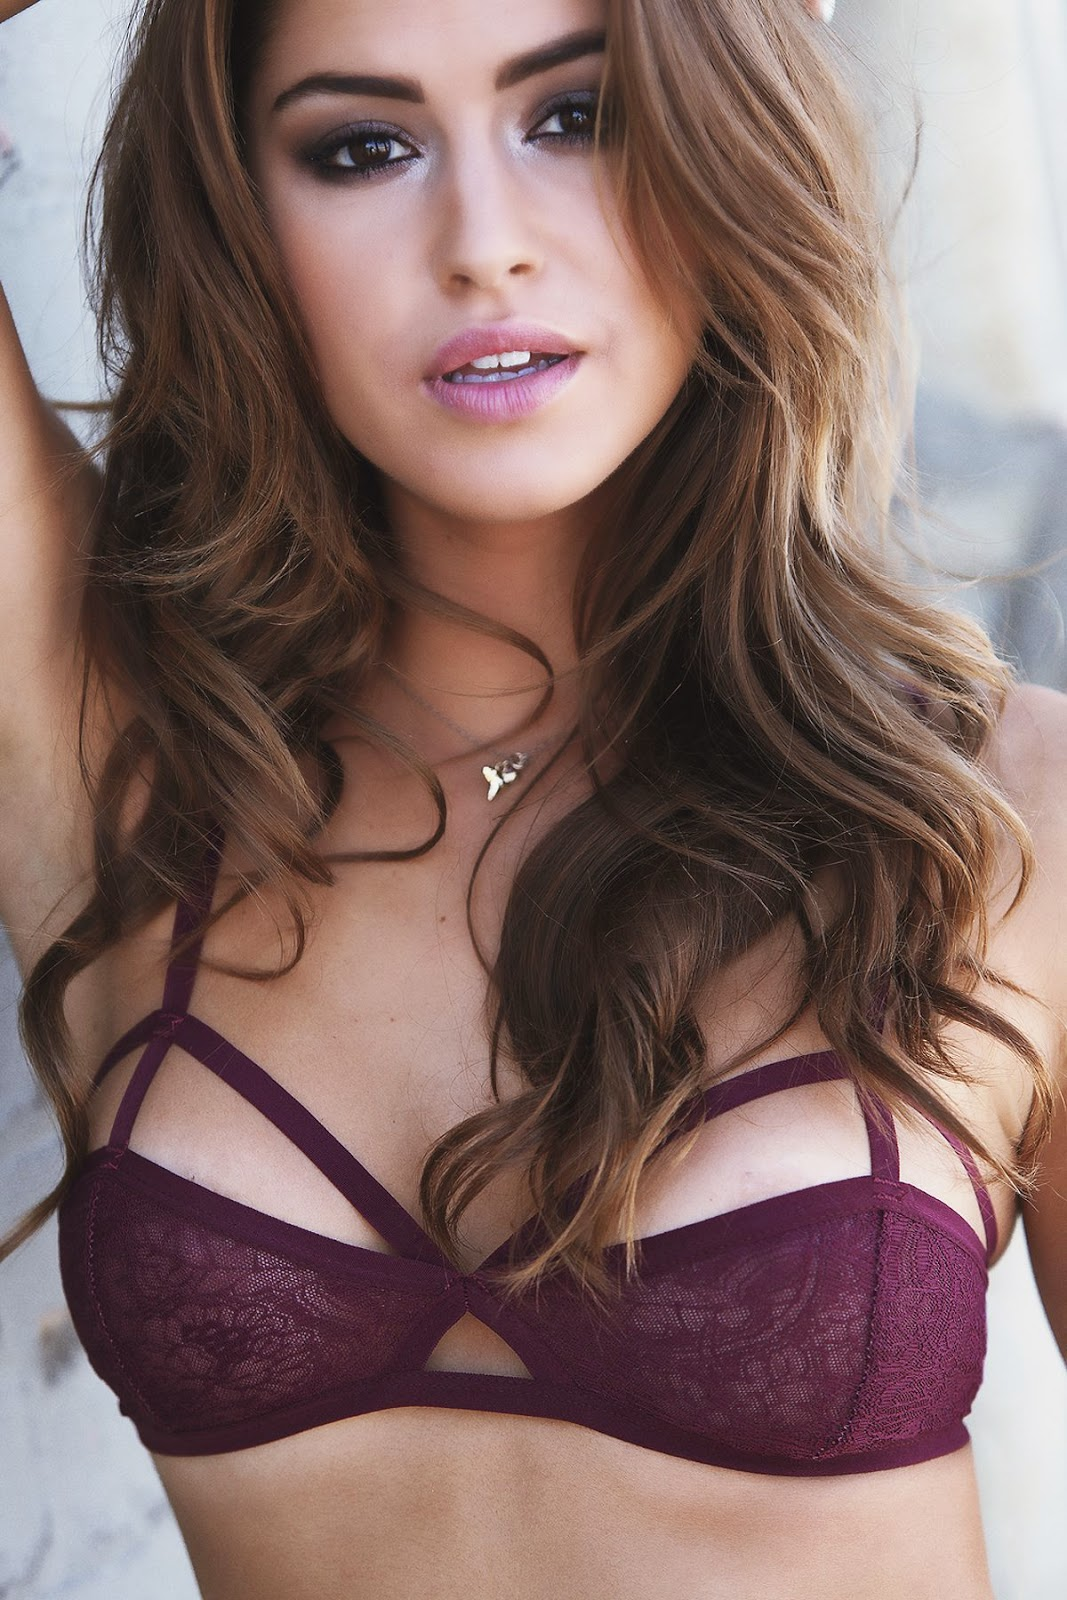 Jehane Gigi Paris strips to lingerie for new photoshoot